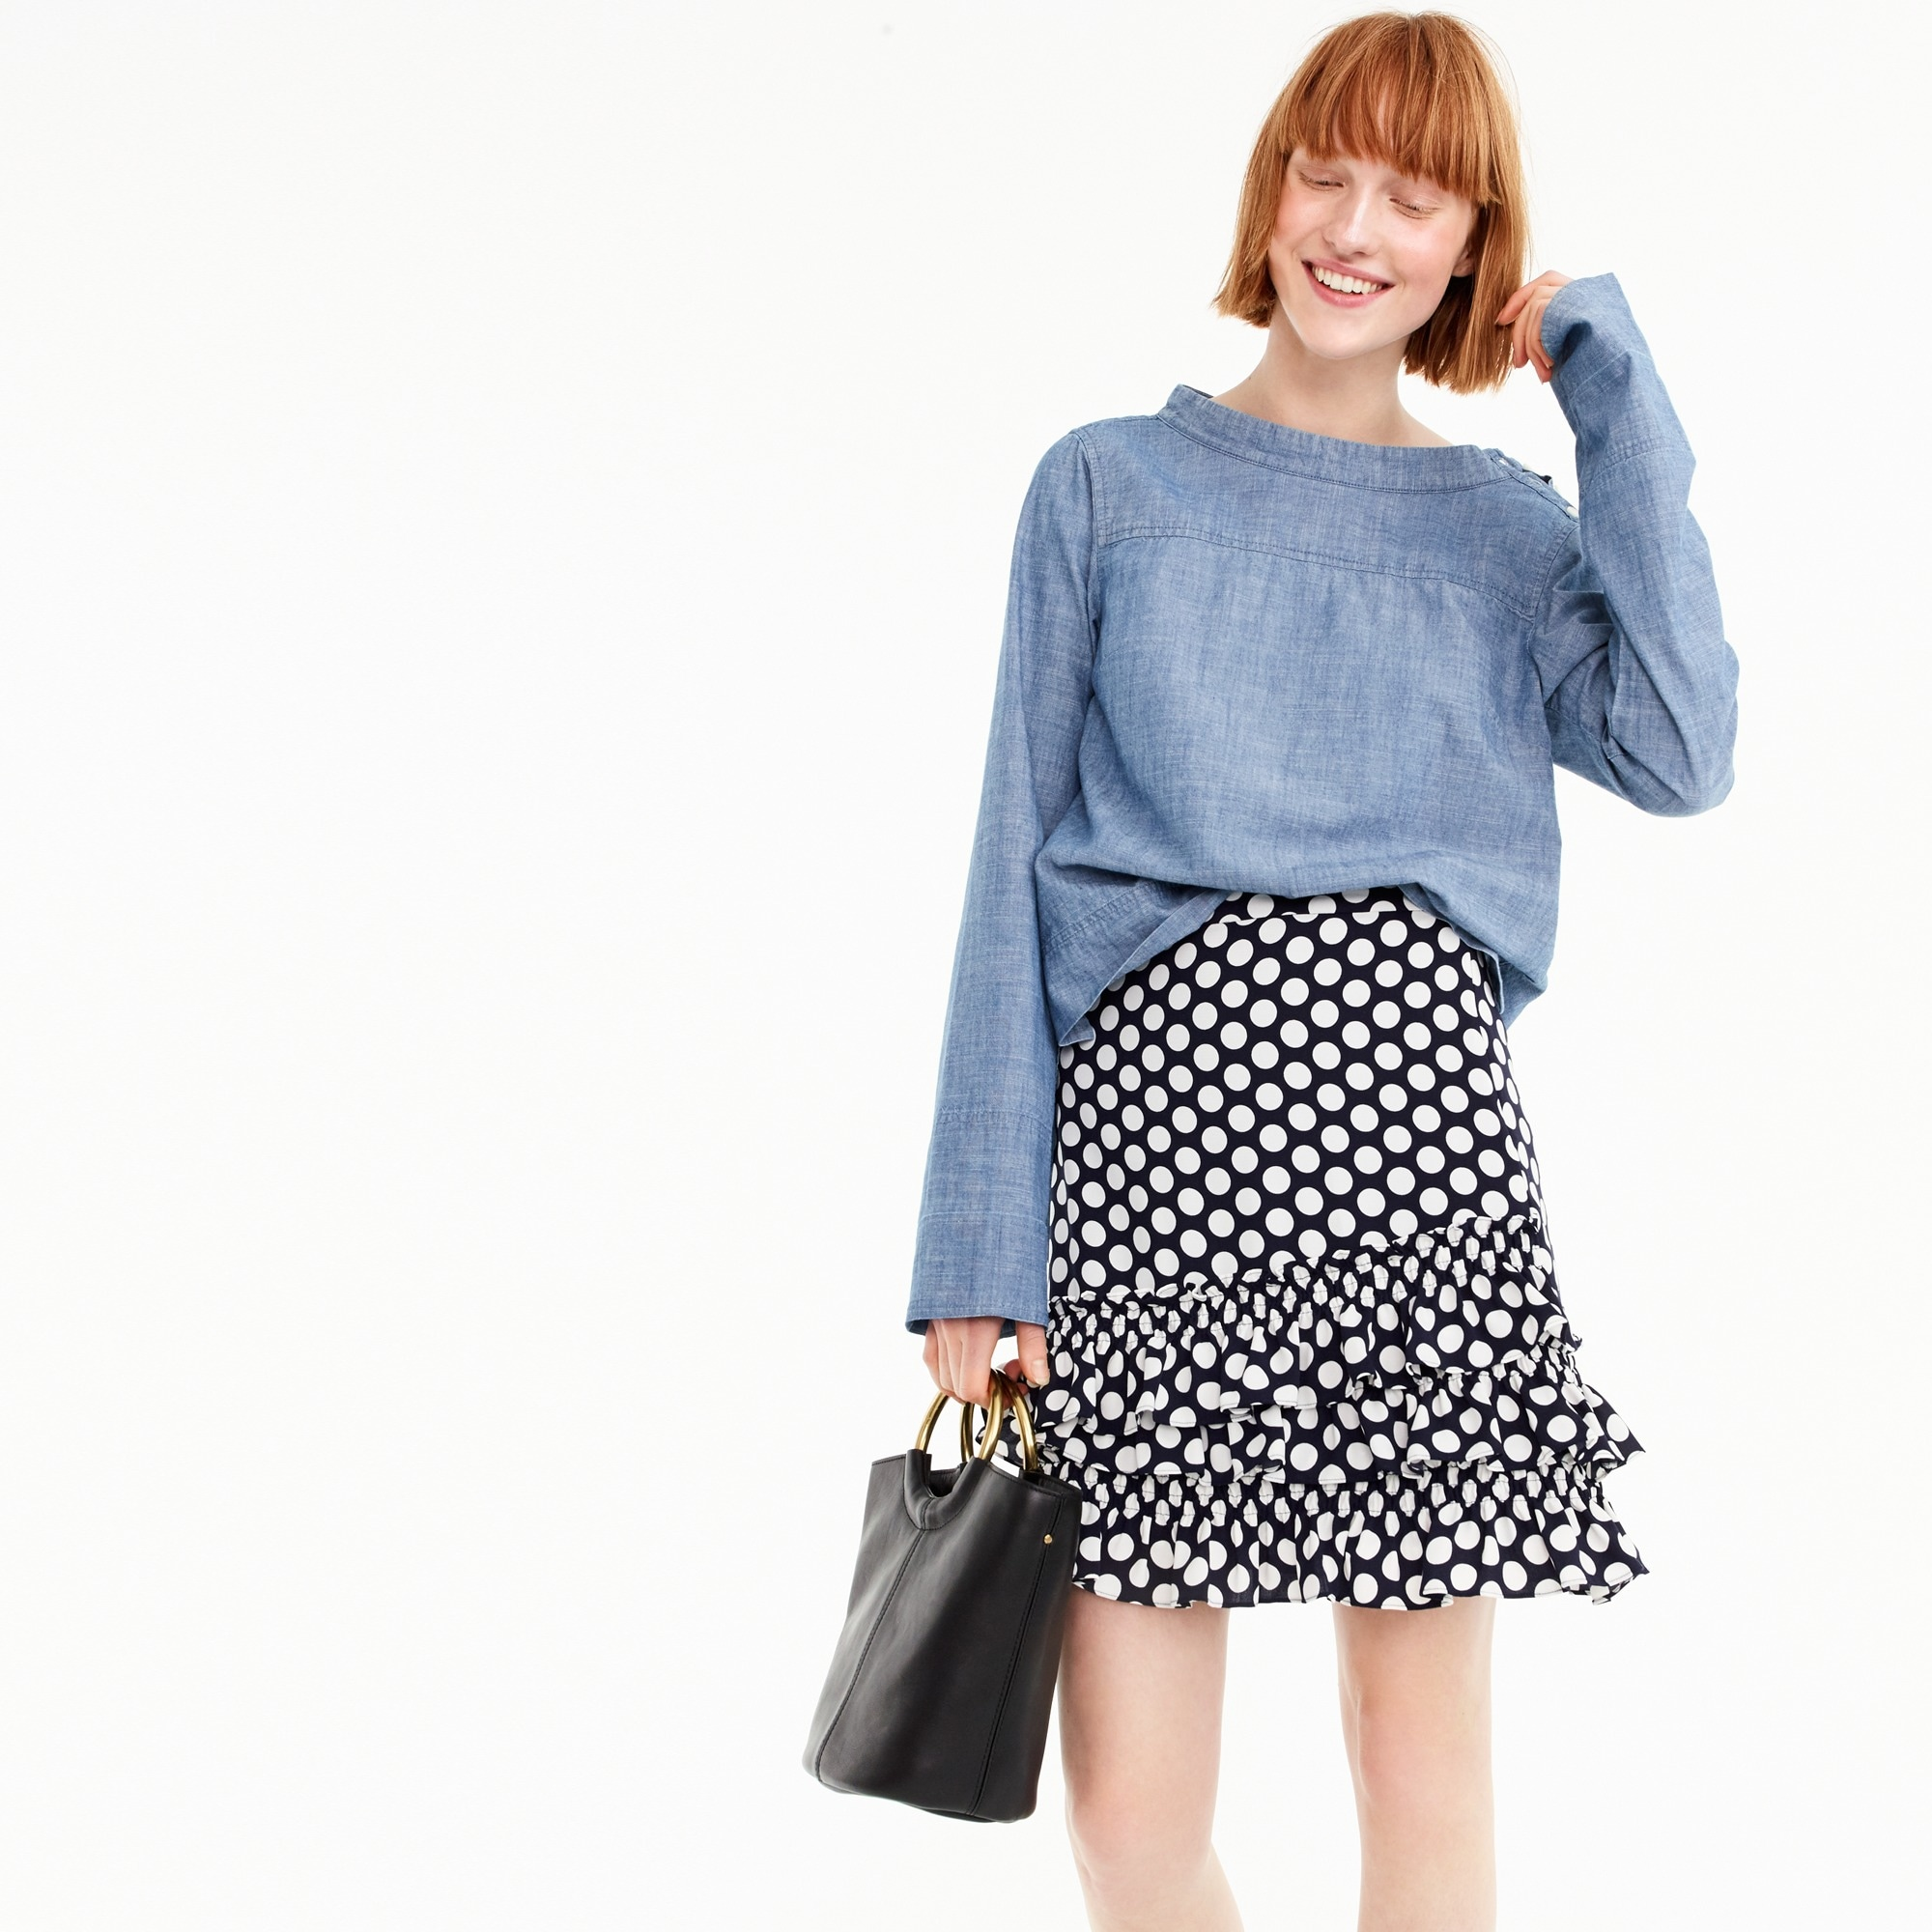 Image 1 for Tall ruffle skirt in dot